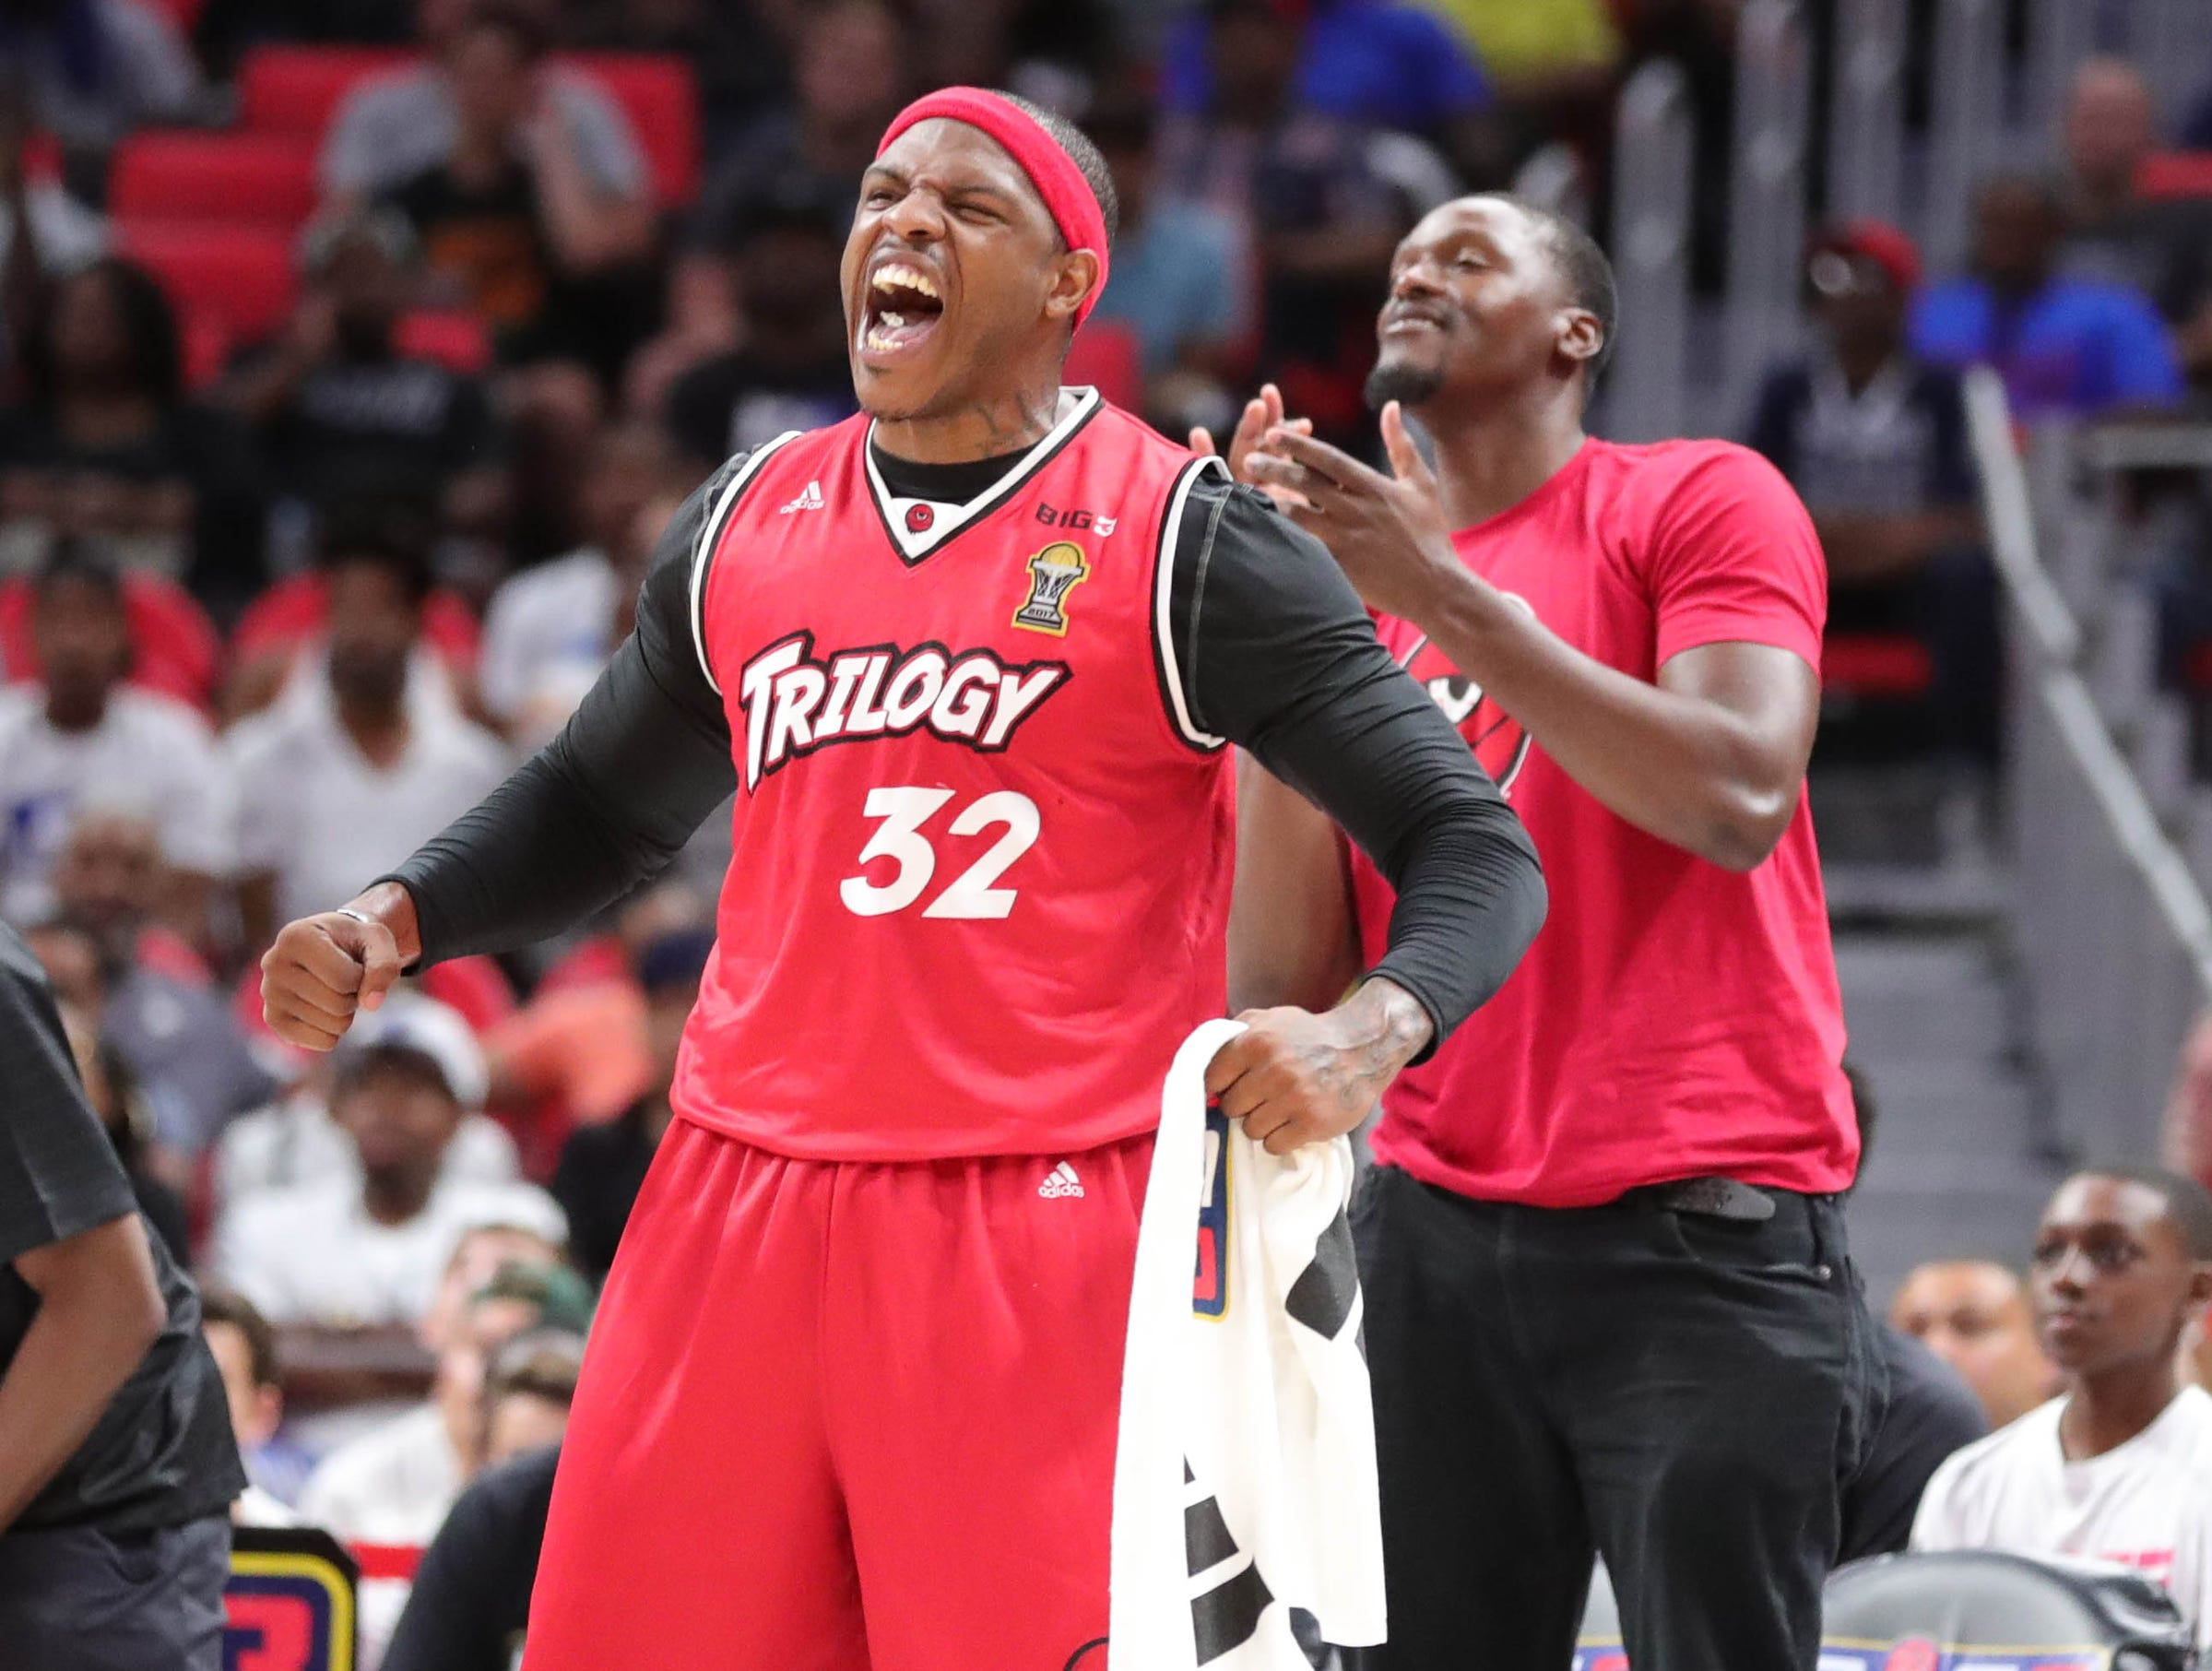 Trilogy player Rashad McCants reacts after a basket during BIG3 action against the Killer 3s on Friday, July 13, 2018 at Little Caesars Arena in Detroit.